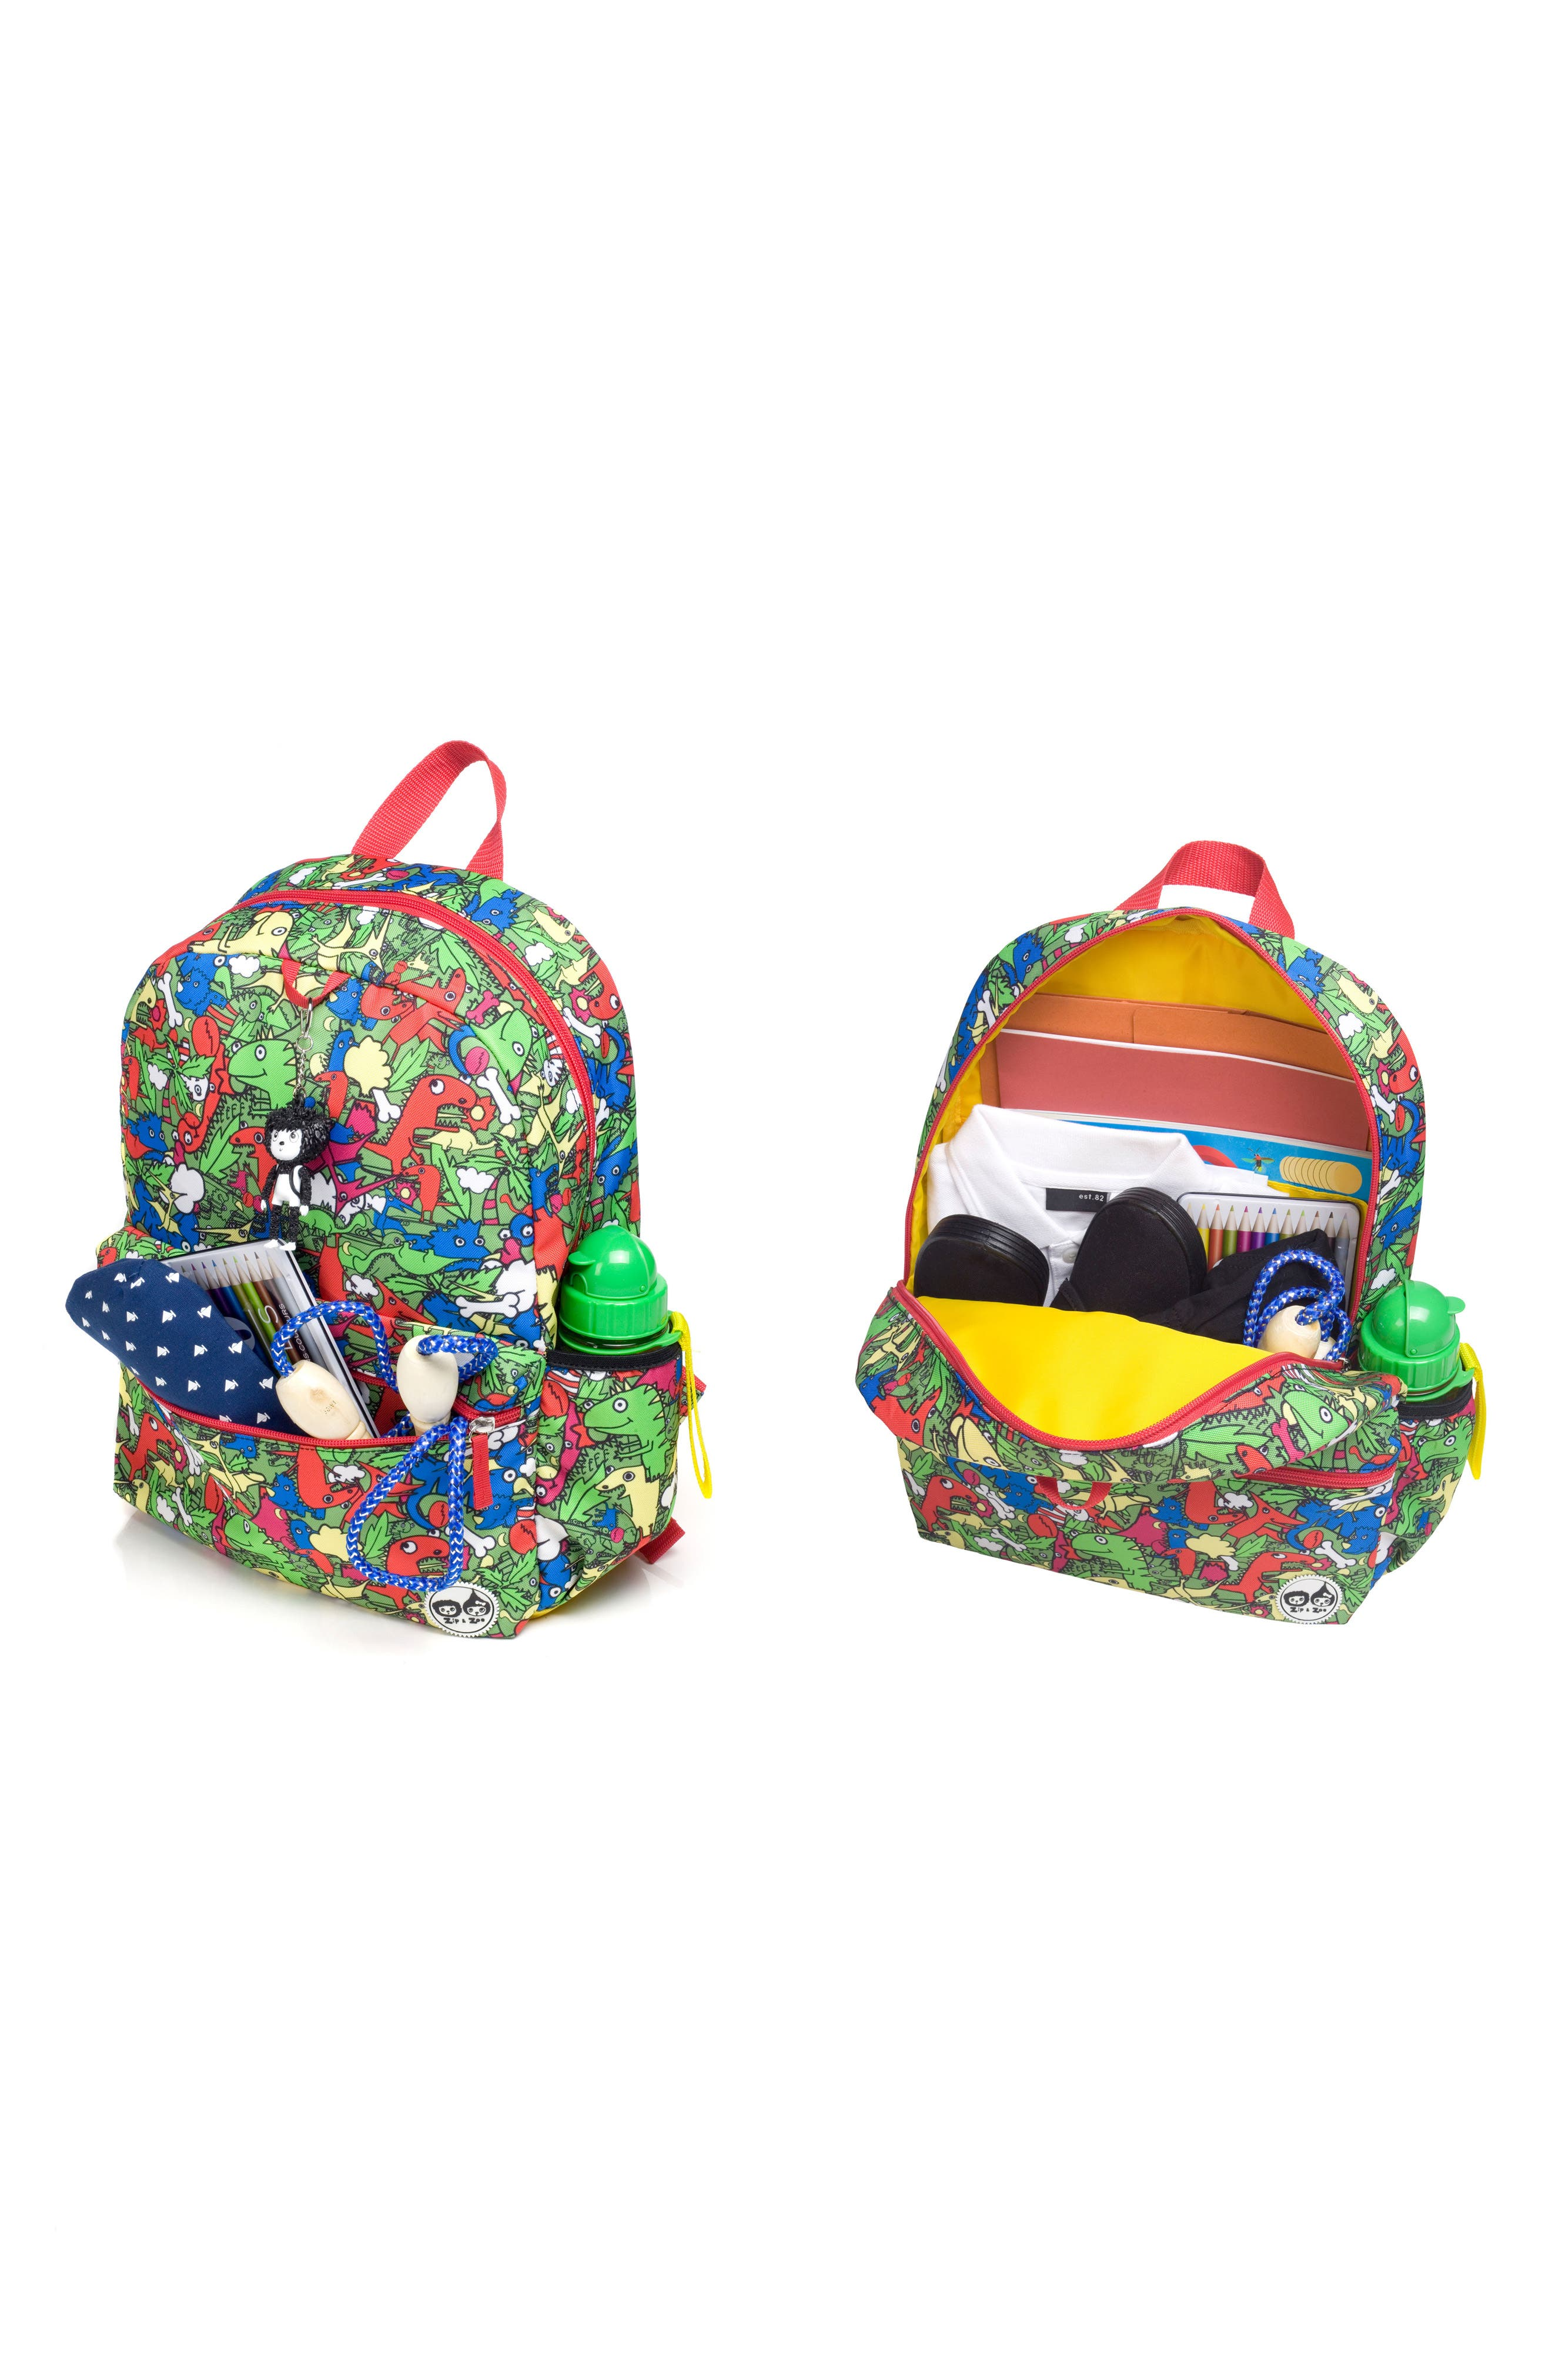 Zip & Zoe Junior Backpack Set,                             Alternate thumbnail 8, color,                             Dino Multi/ Dylan